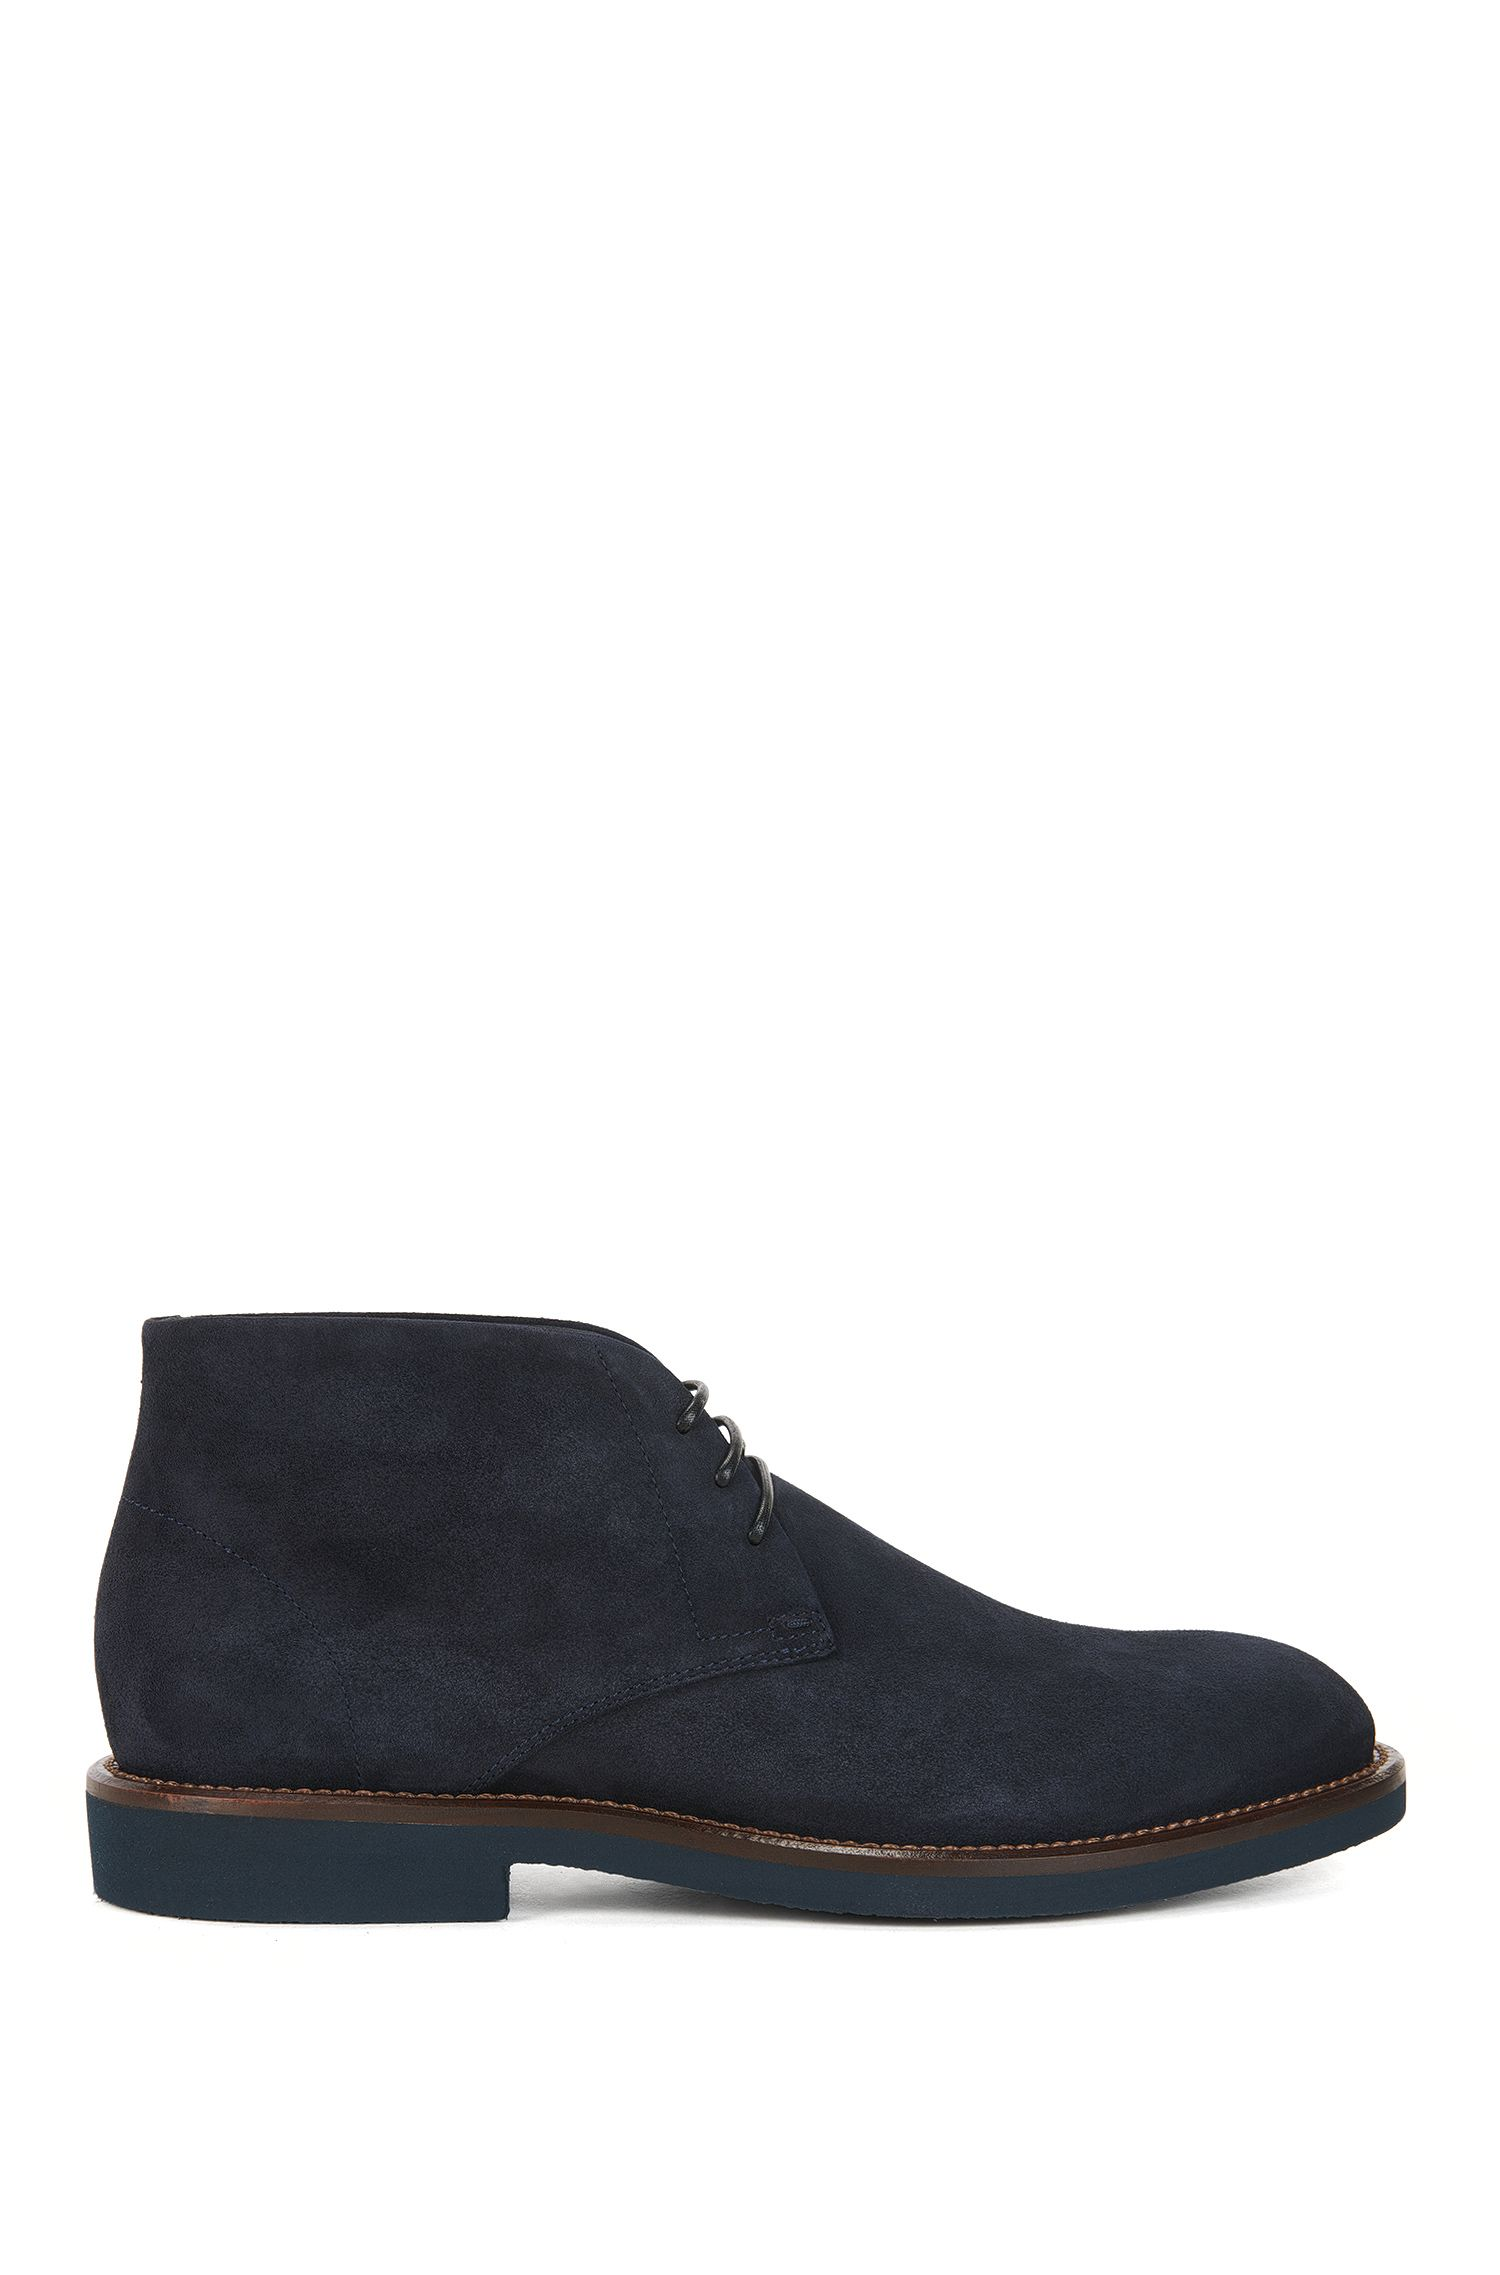 Desert boot stringati in morbida pelle scamosciata